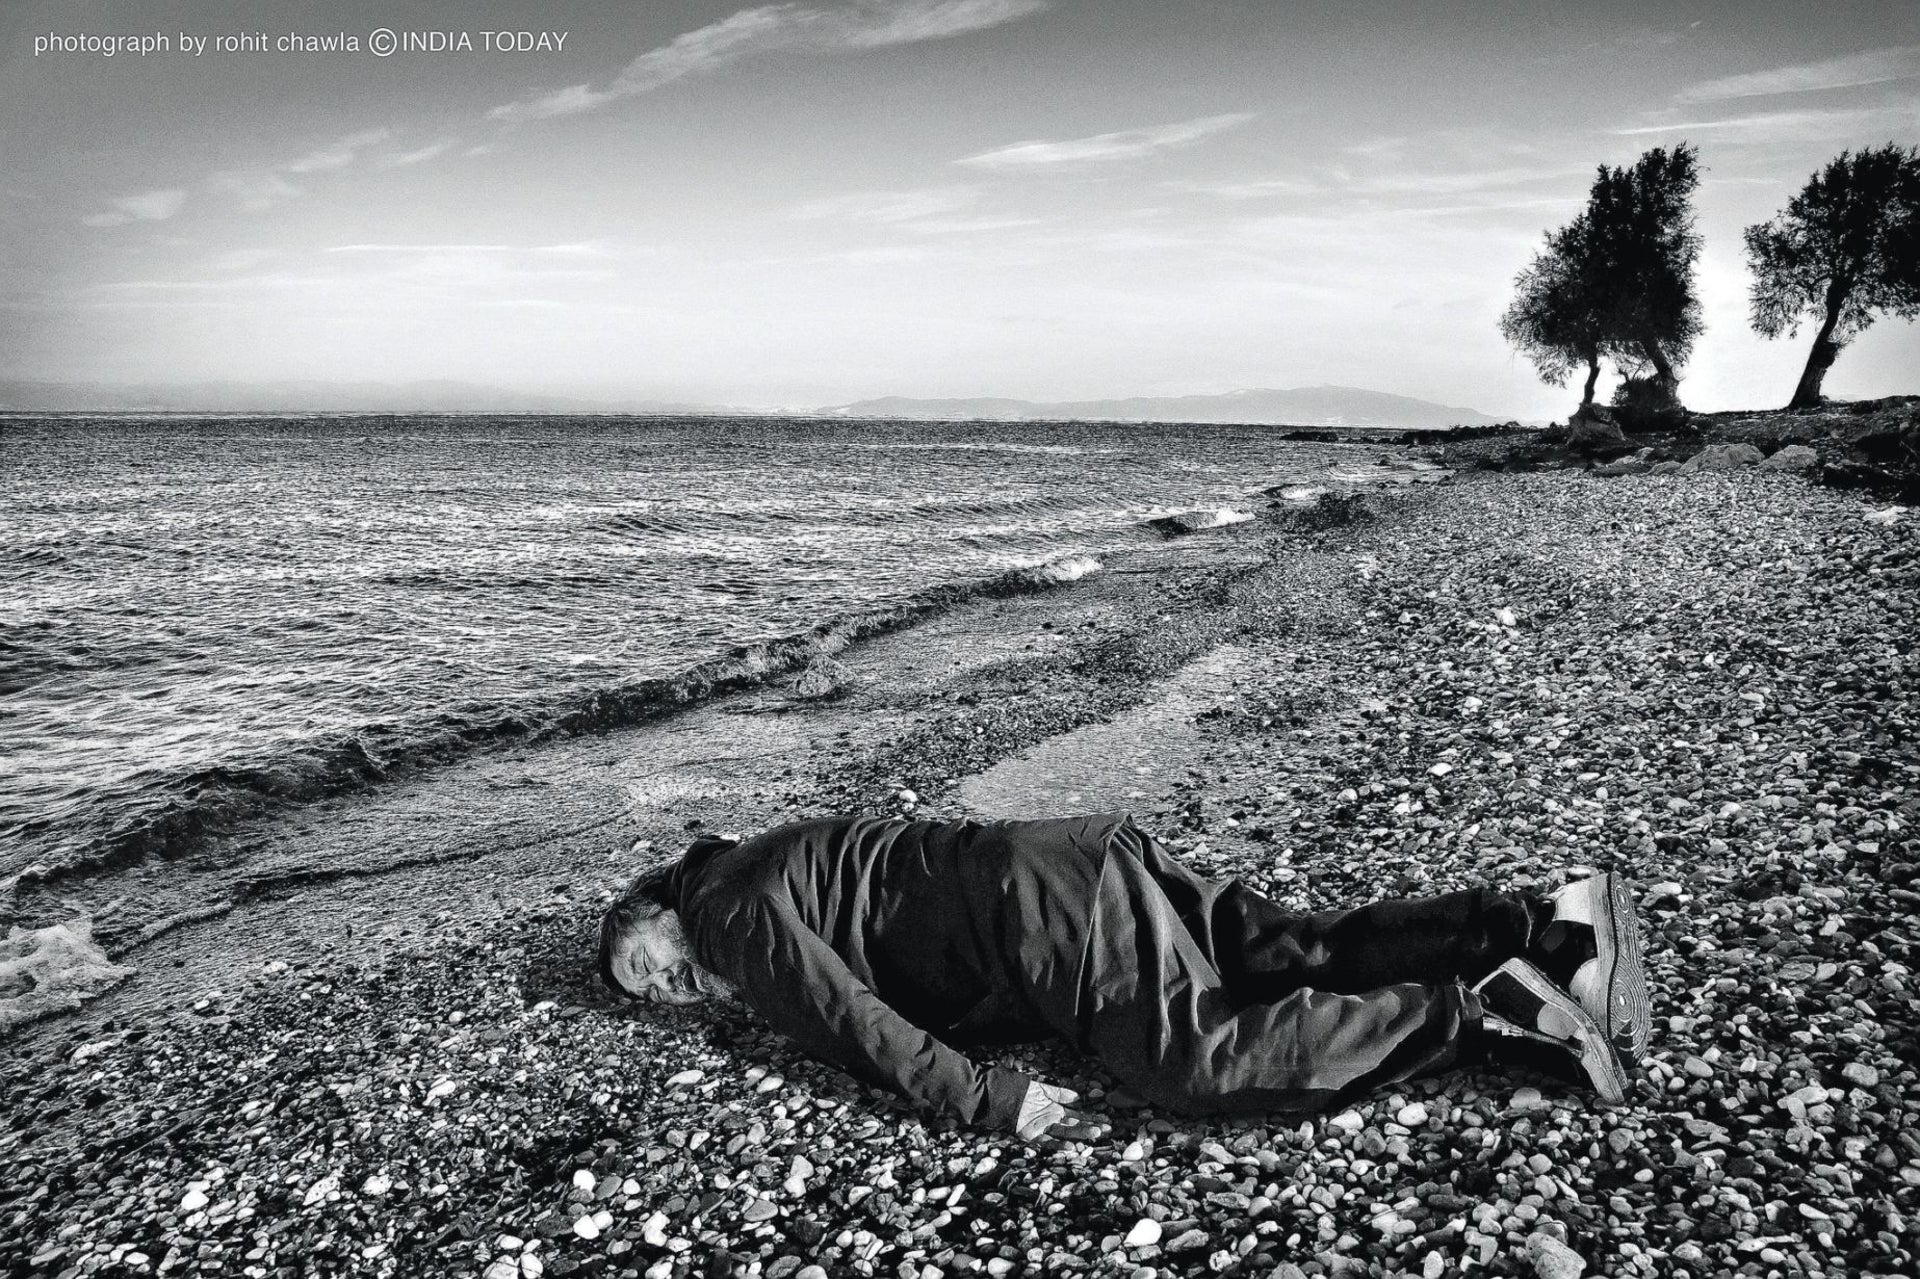 Artist Ai Weiwei poses in Lesbos, Greece, in the position of Syrian refugee child Aylan Kurdi, who died there in September 2015.